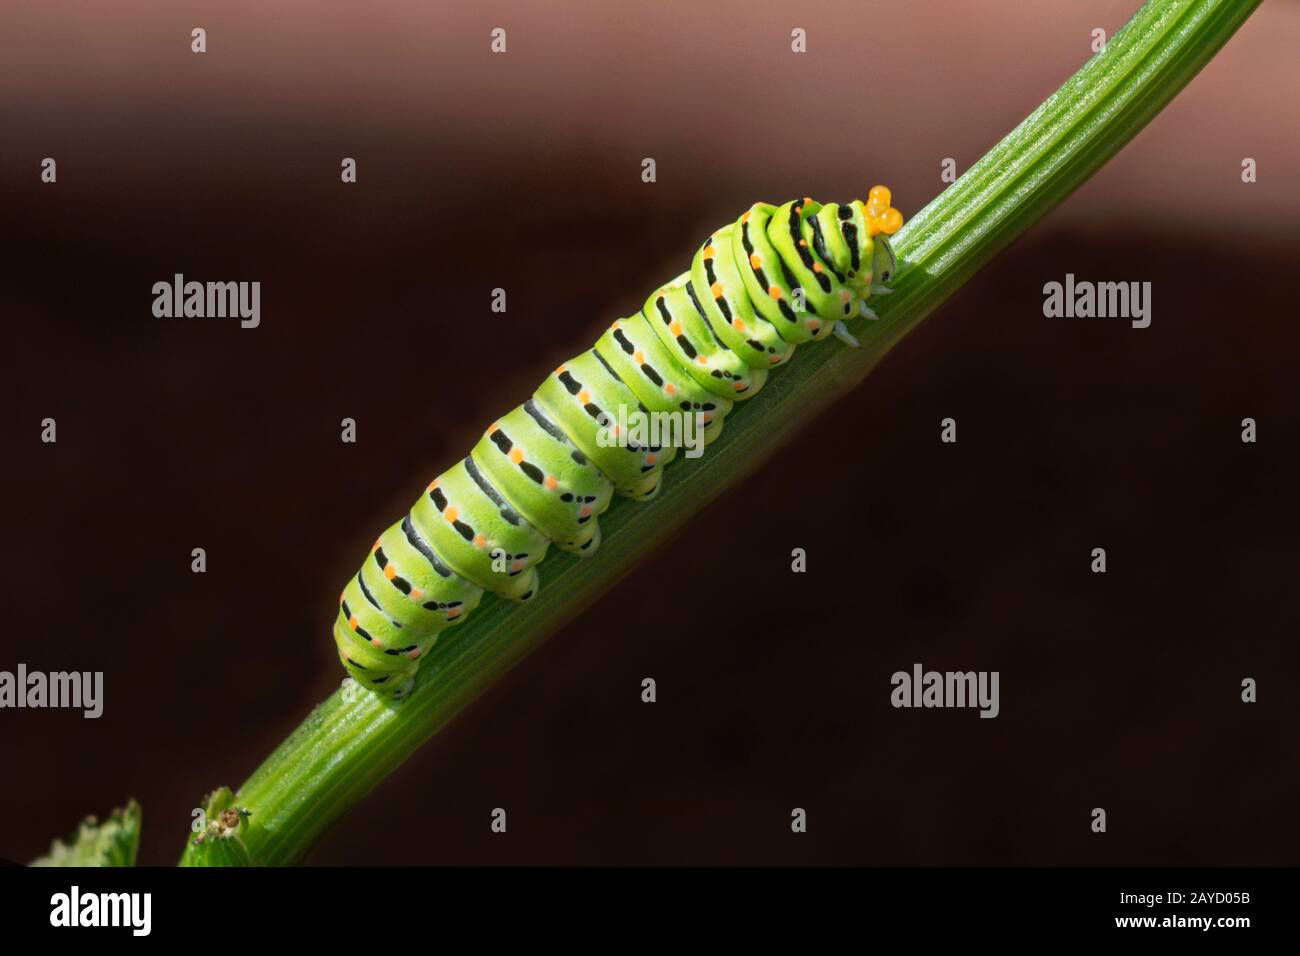 Old World swallowtail butterfly caterpillar exhibiting its retractable horn-like defense organs osmeteria on a celery stalk with a dark clay red backg Stock Photo